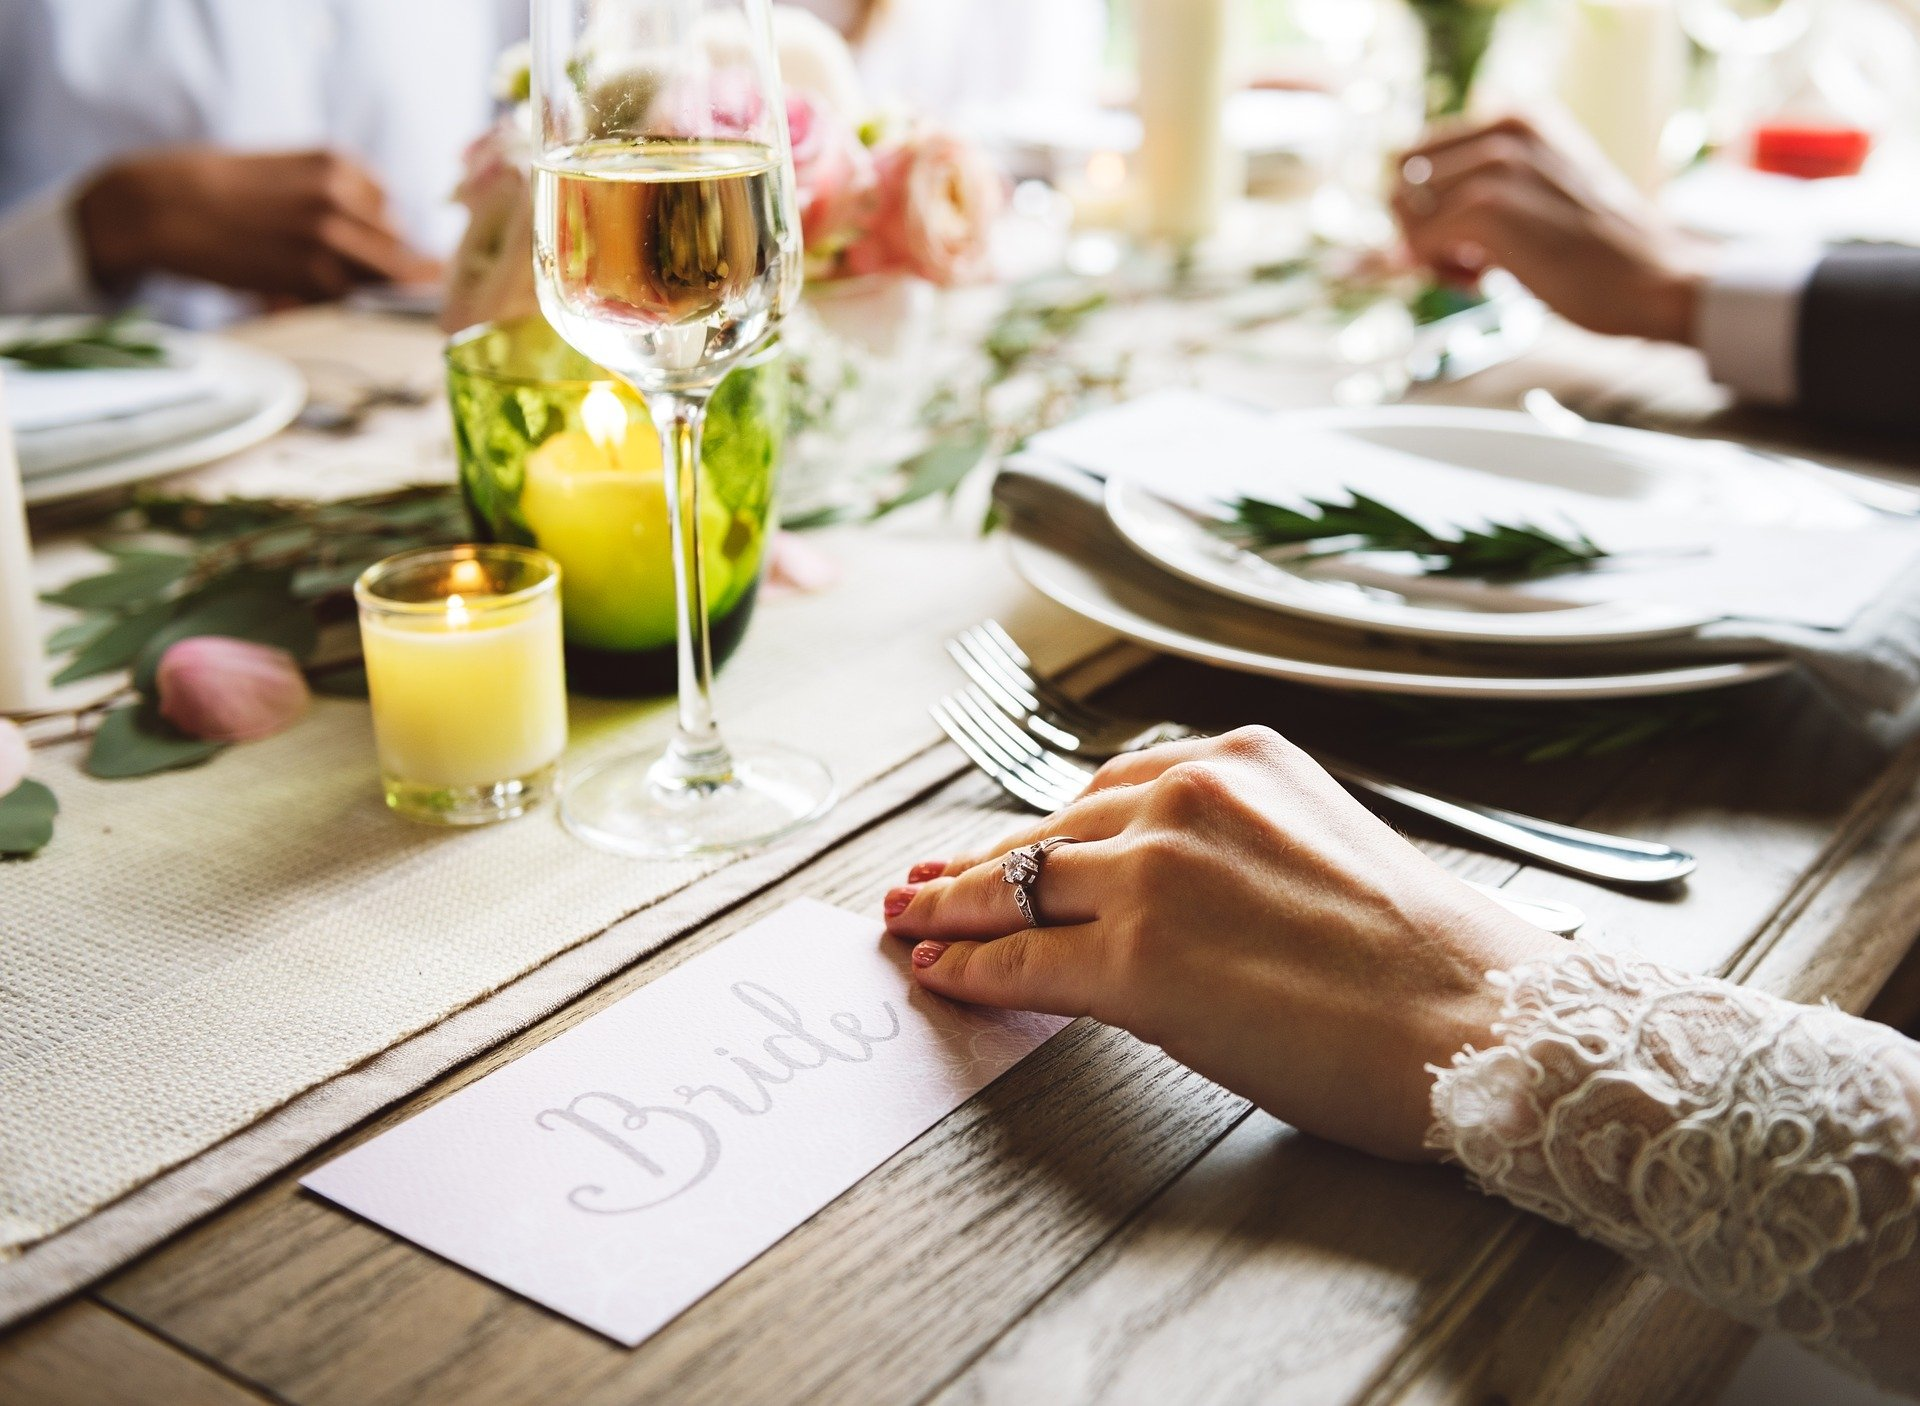 Join us for a Wedding Catering Tasting & Pop-up Market